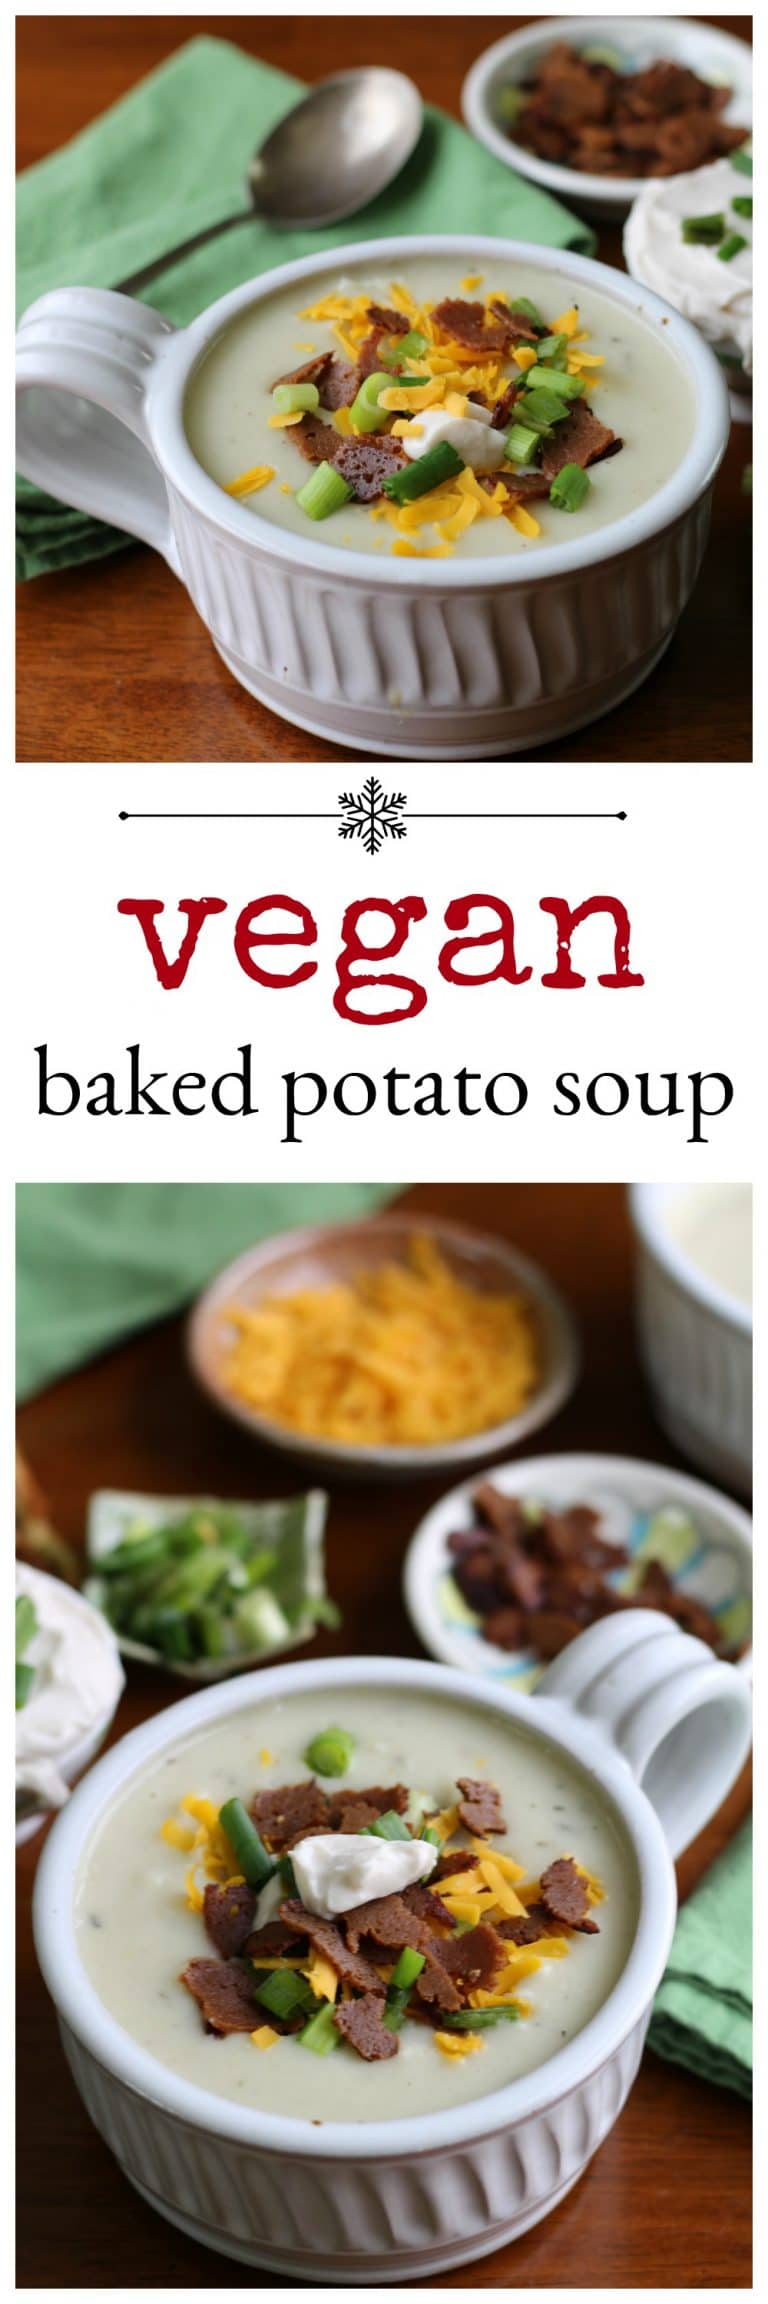 Fully loaded vegan baked potato soup: This full-bodied soup is topped with seitan bacon, vegan cheese, and green onions. | cadryskitchen.com #vegan